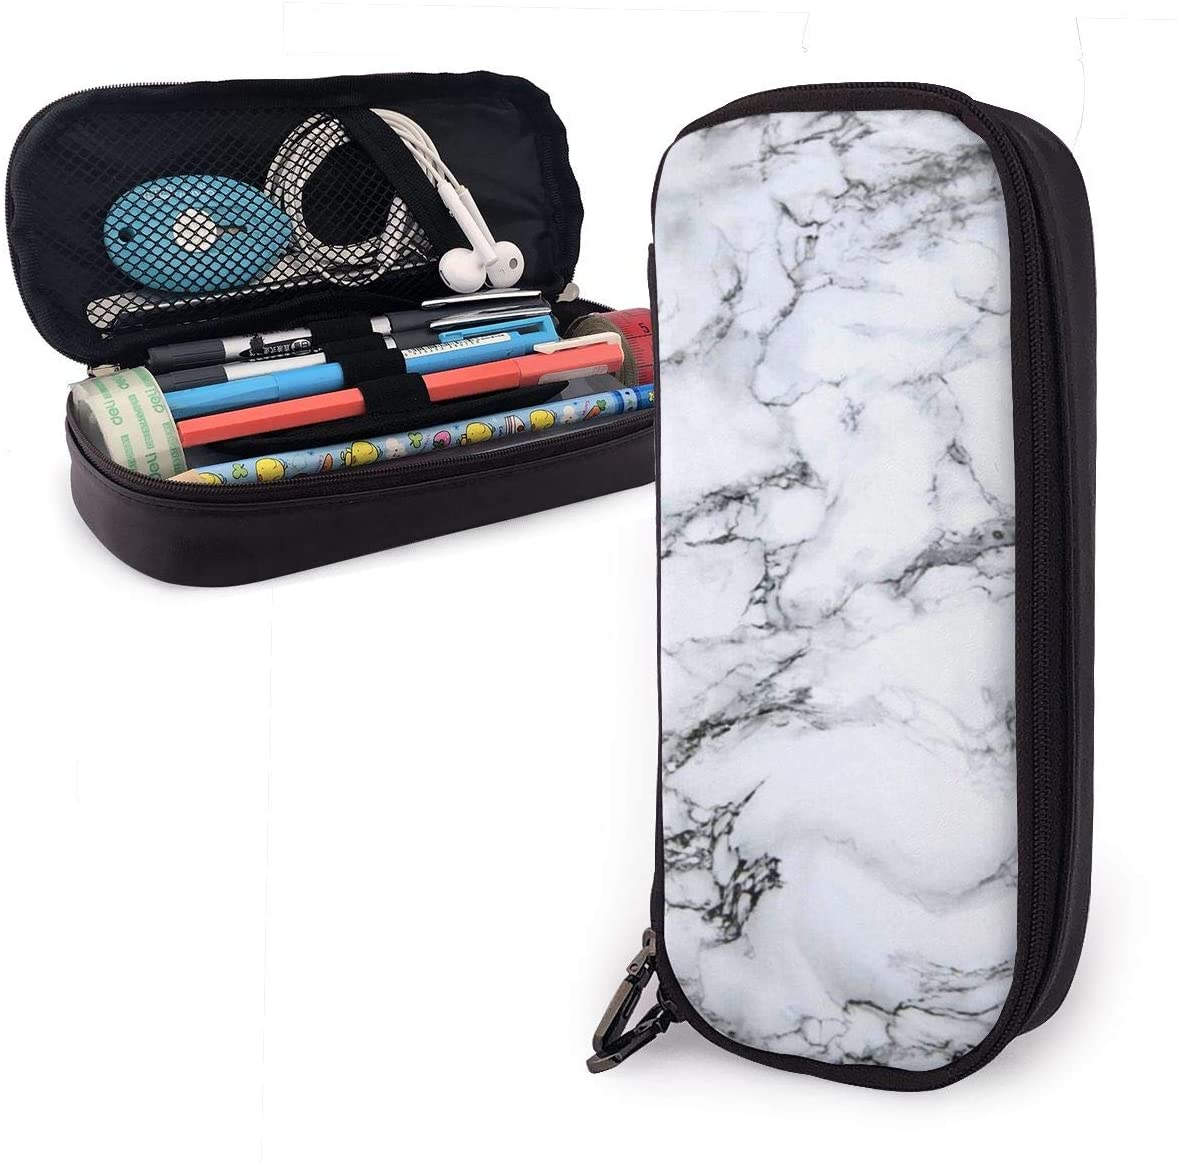 NiYoung Unisex Big Capacity Pencil Case Holder Pen Organizer Pouch Stationery Box Large Storage College Middle School & Office Supplies Stationery - White Marble